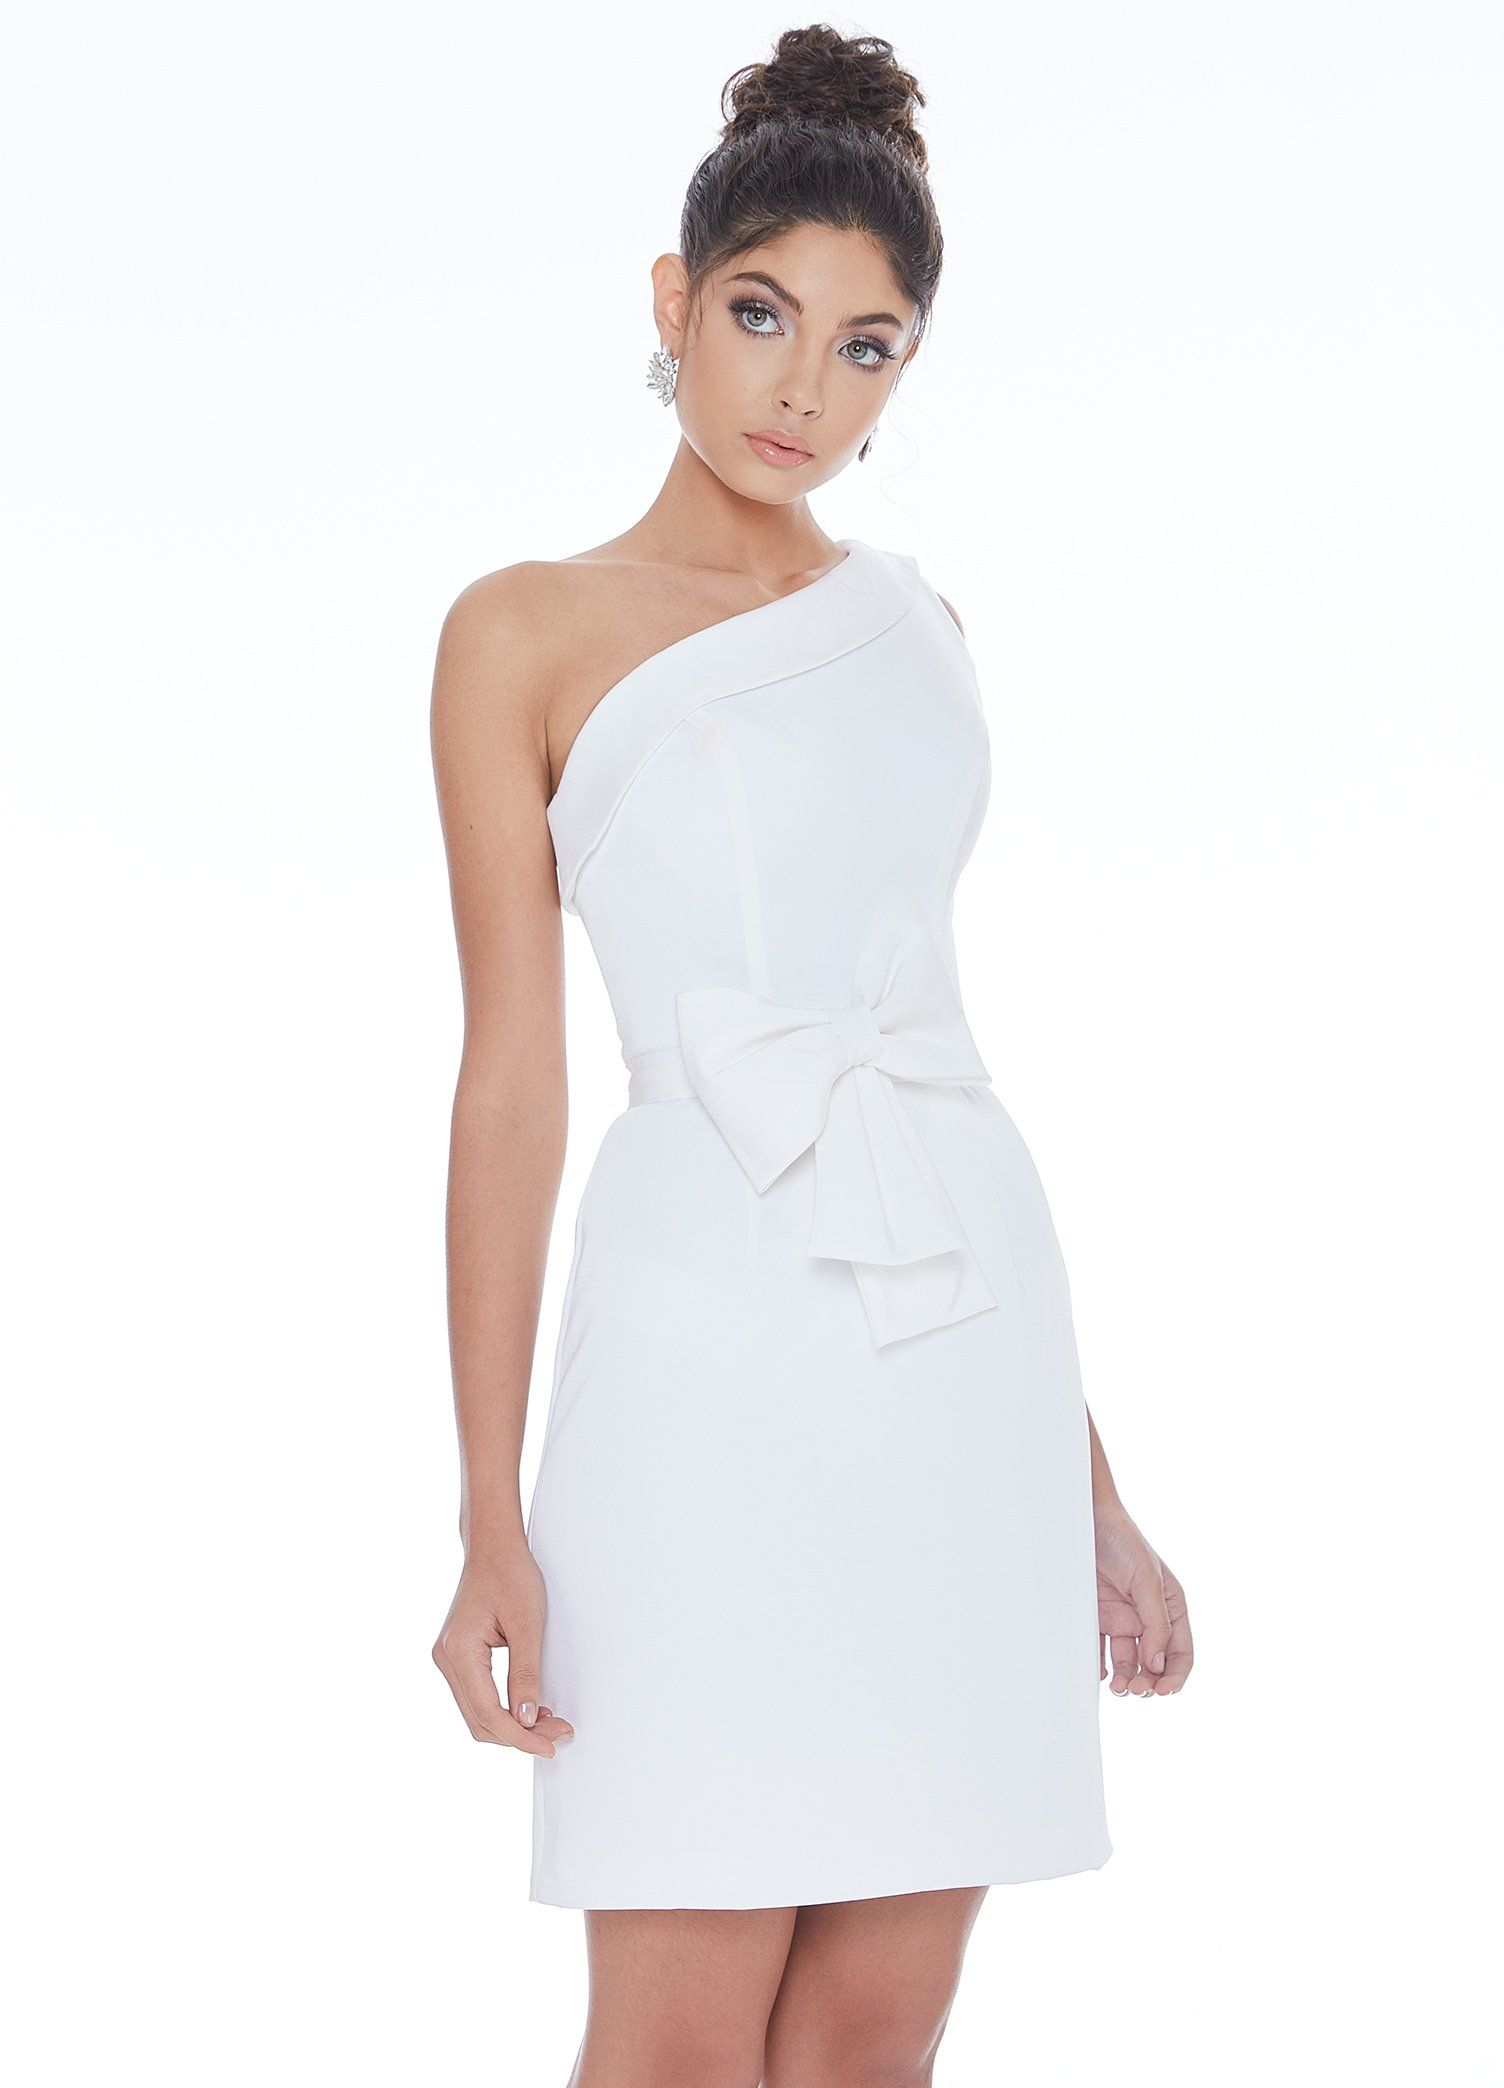 Ashley Lauren 4229 One Shoulder Bow Cocktail Dress